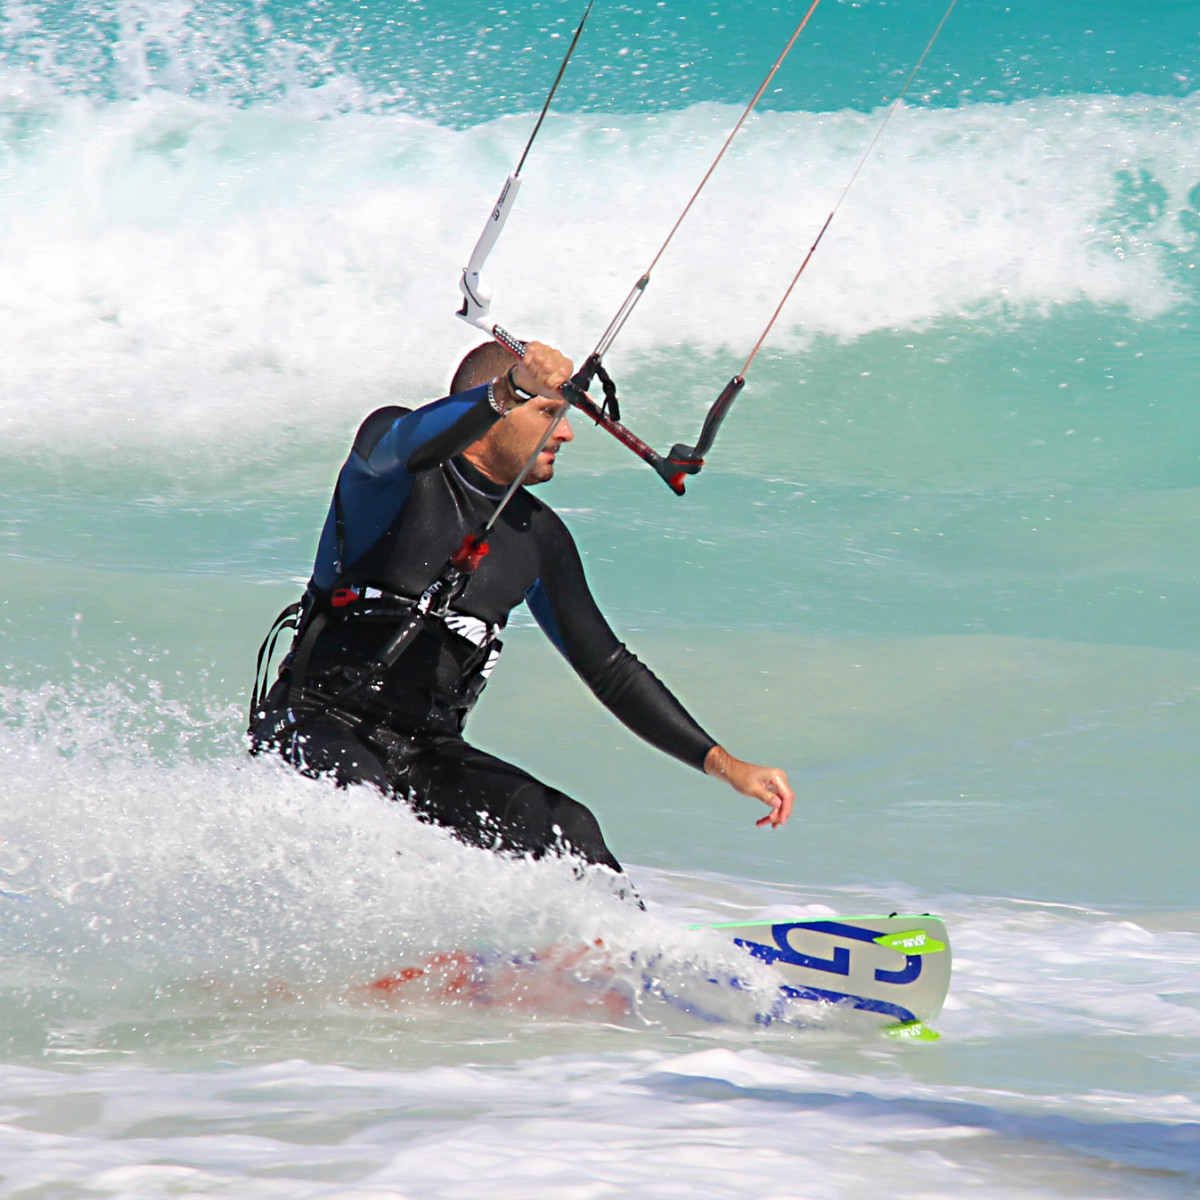 A kiteboarder at Corralejo riding the waves